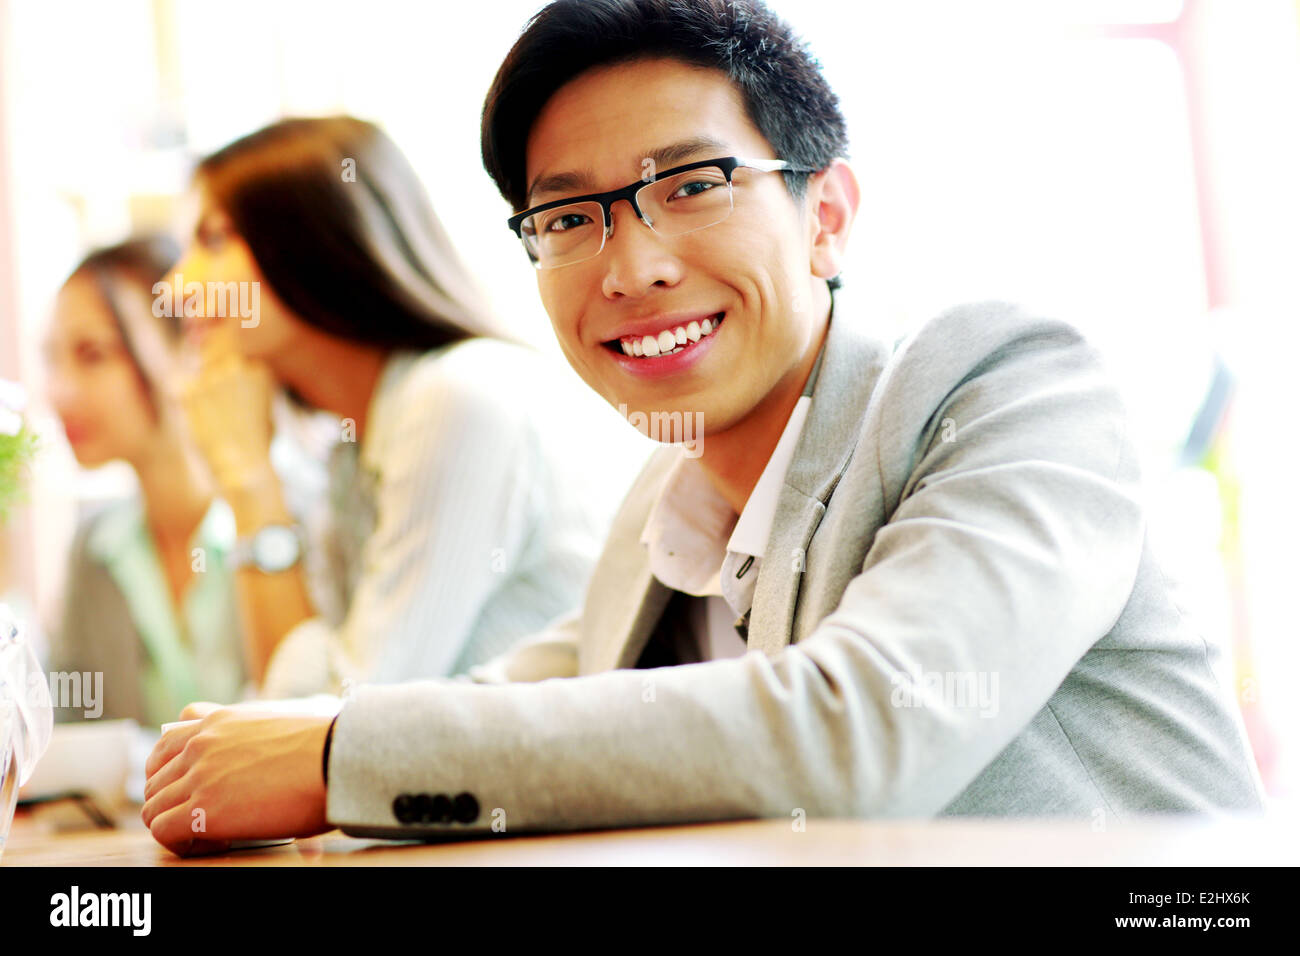 Portrait of smiling businessman sitting in front of colleagues - Stock Image